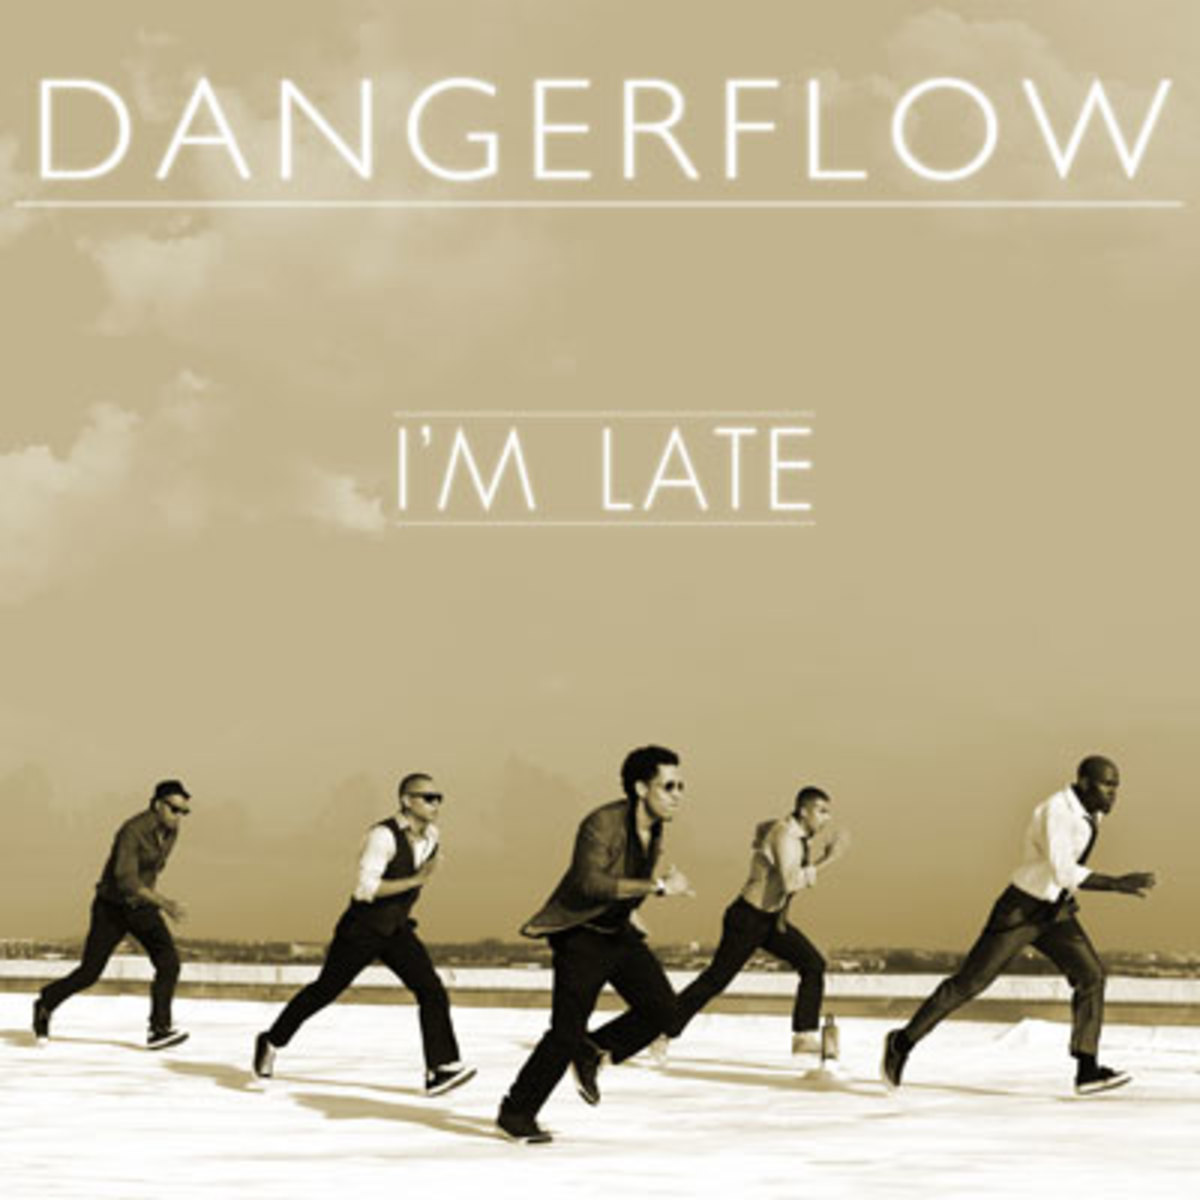 dangerflow-imlate.jpg